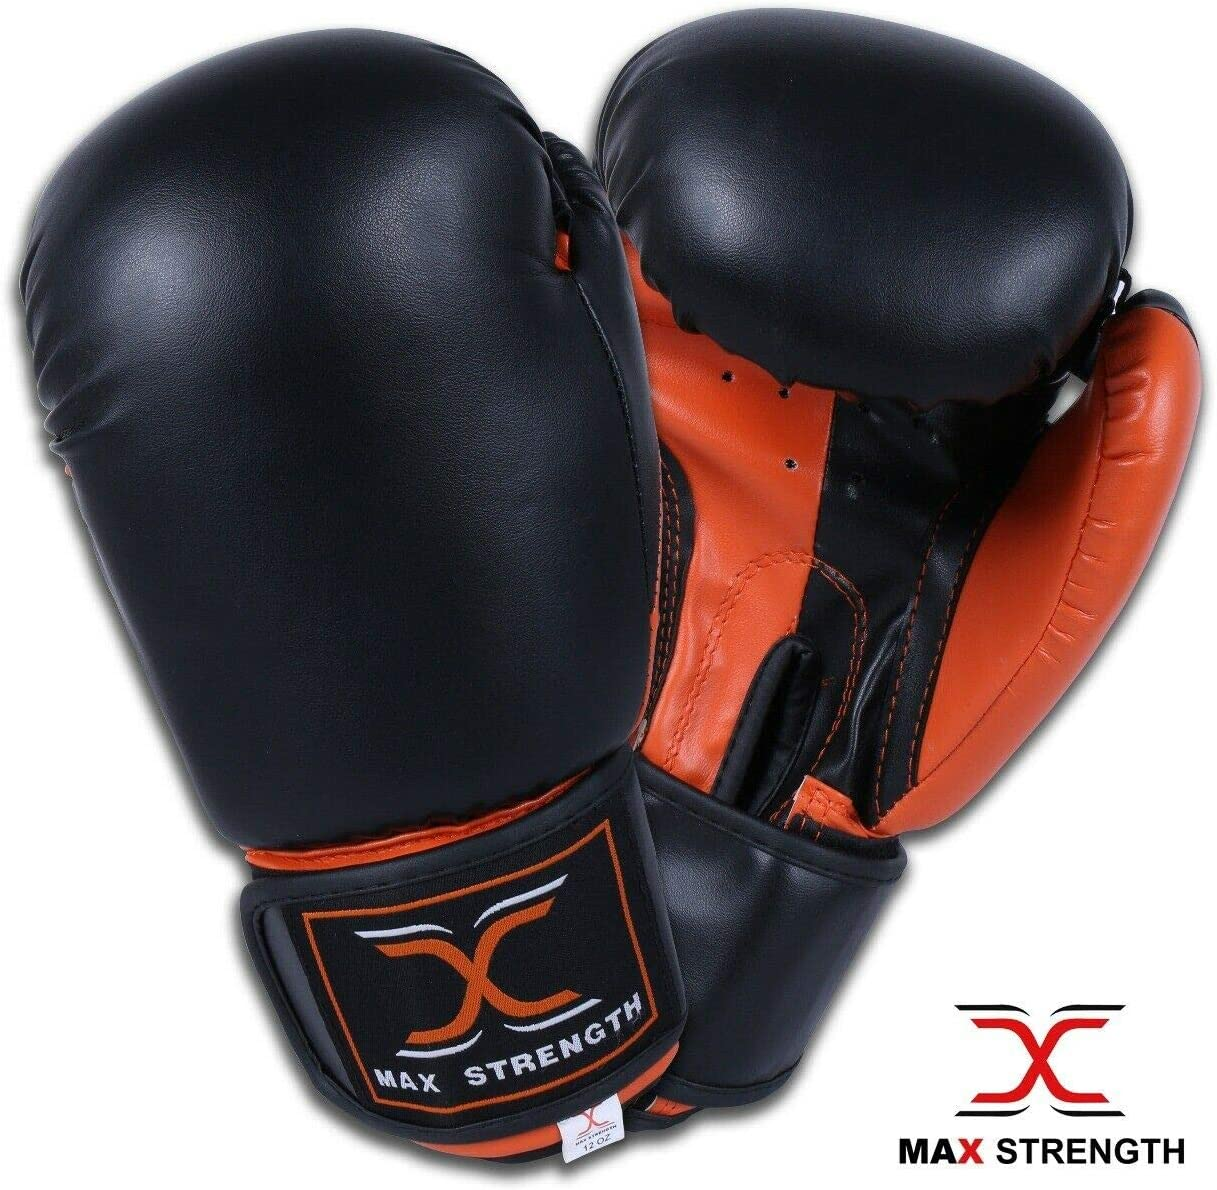 Black /& Orange, 10oz Max Strength Focus Pads Jab /& Hook Boxing Sparring Punching Gloves MMA Mitts Set